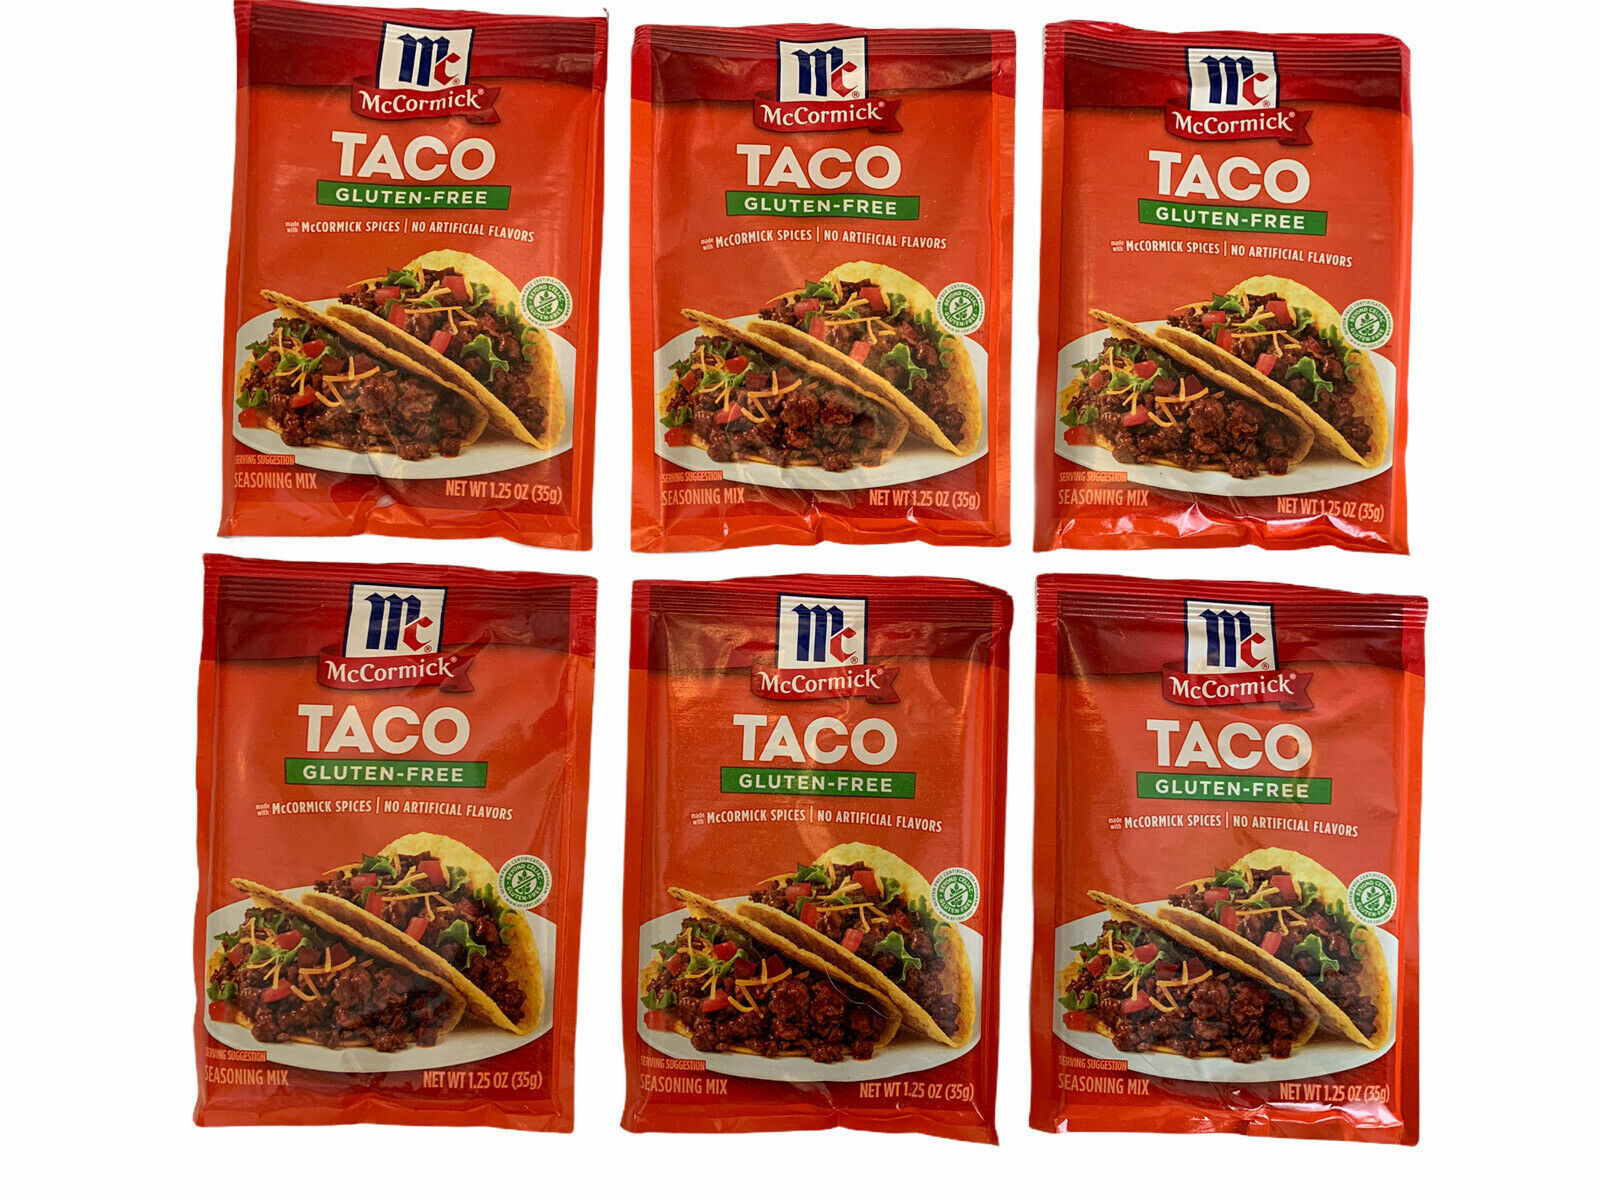 Lot of 6 Packages McCormick Taco Spices Mix Gluten Free 1.25 oz Exp 09/2022 - $19.79